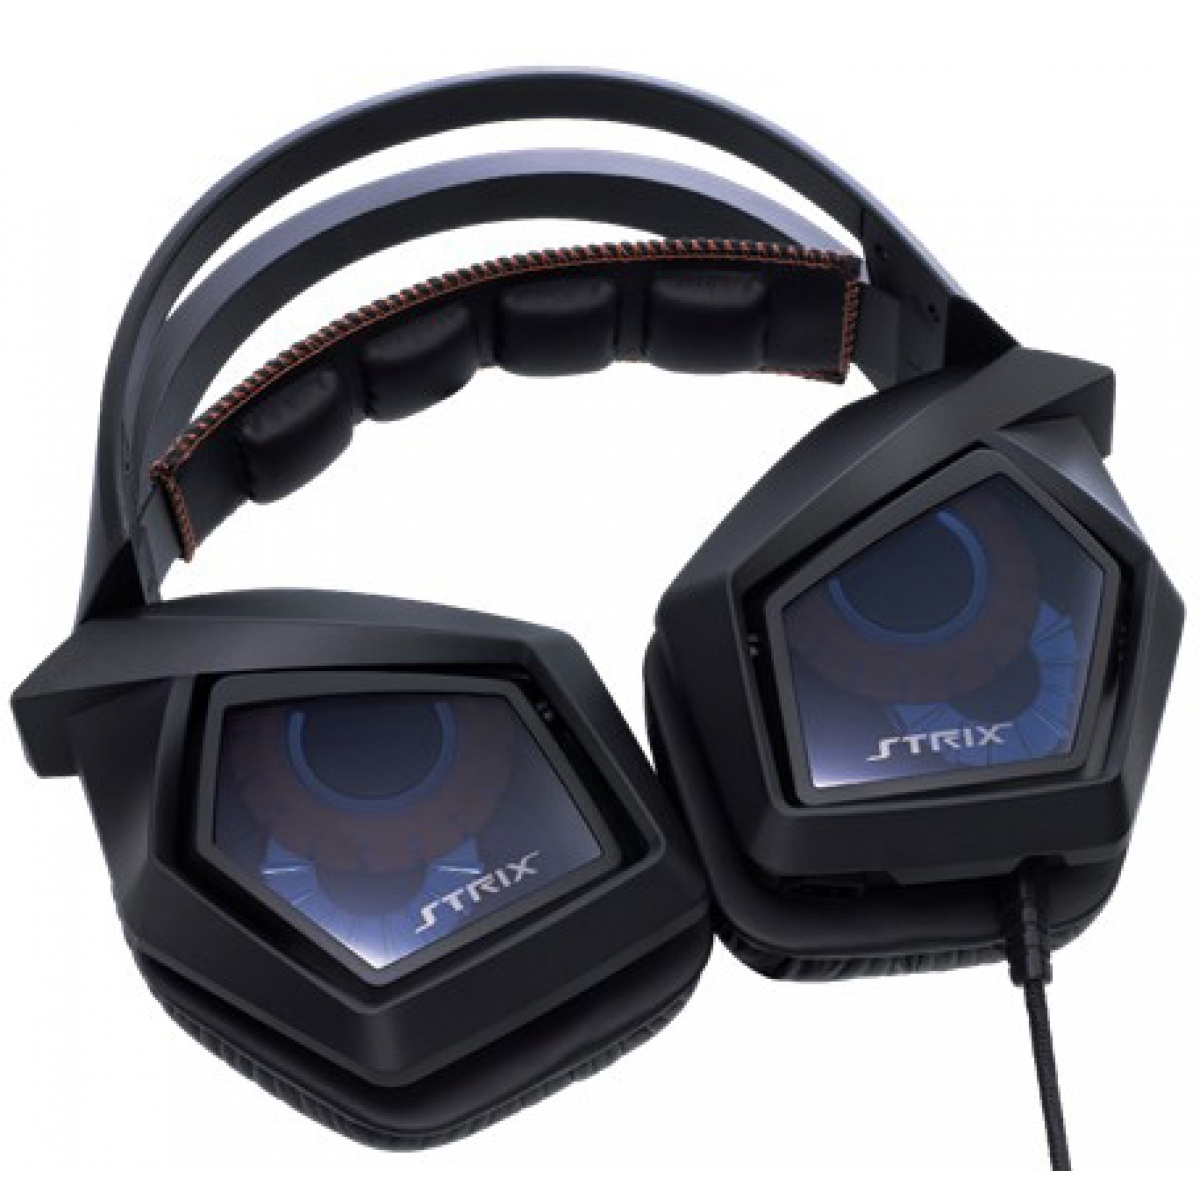 Headset Gamer Asus Strix Surround 7.1 + Controle Individual 90YH0091-M8UA00